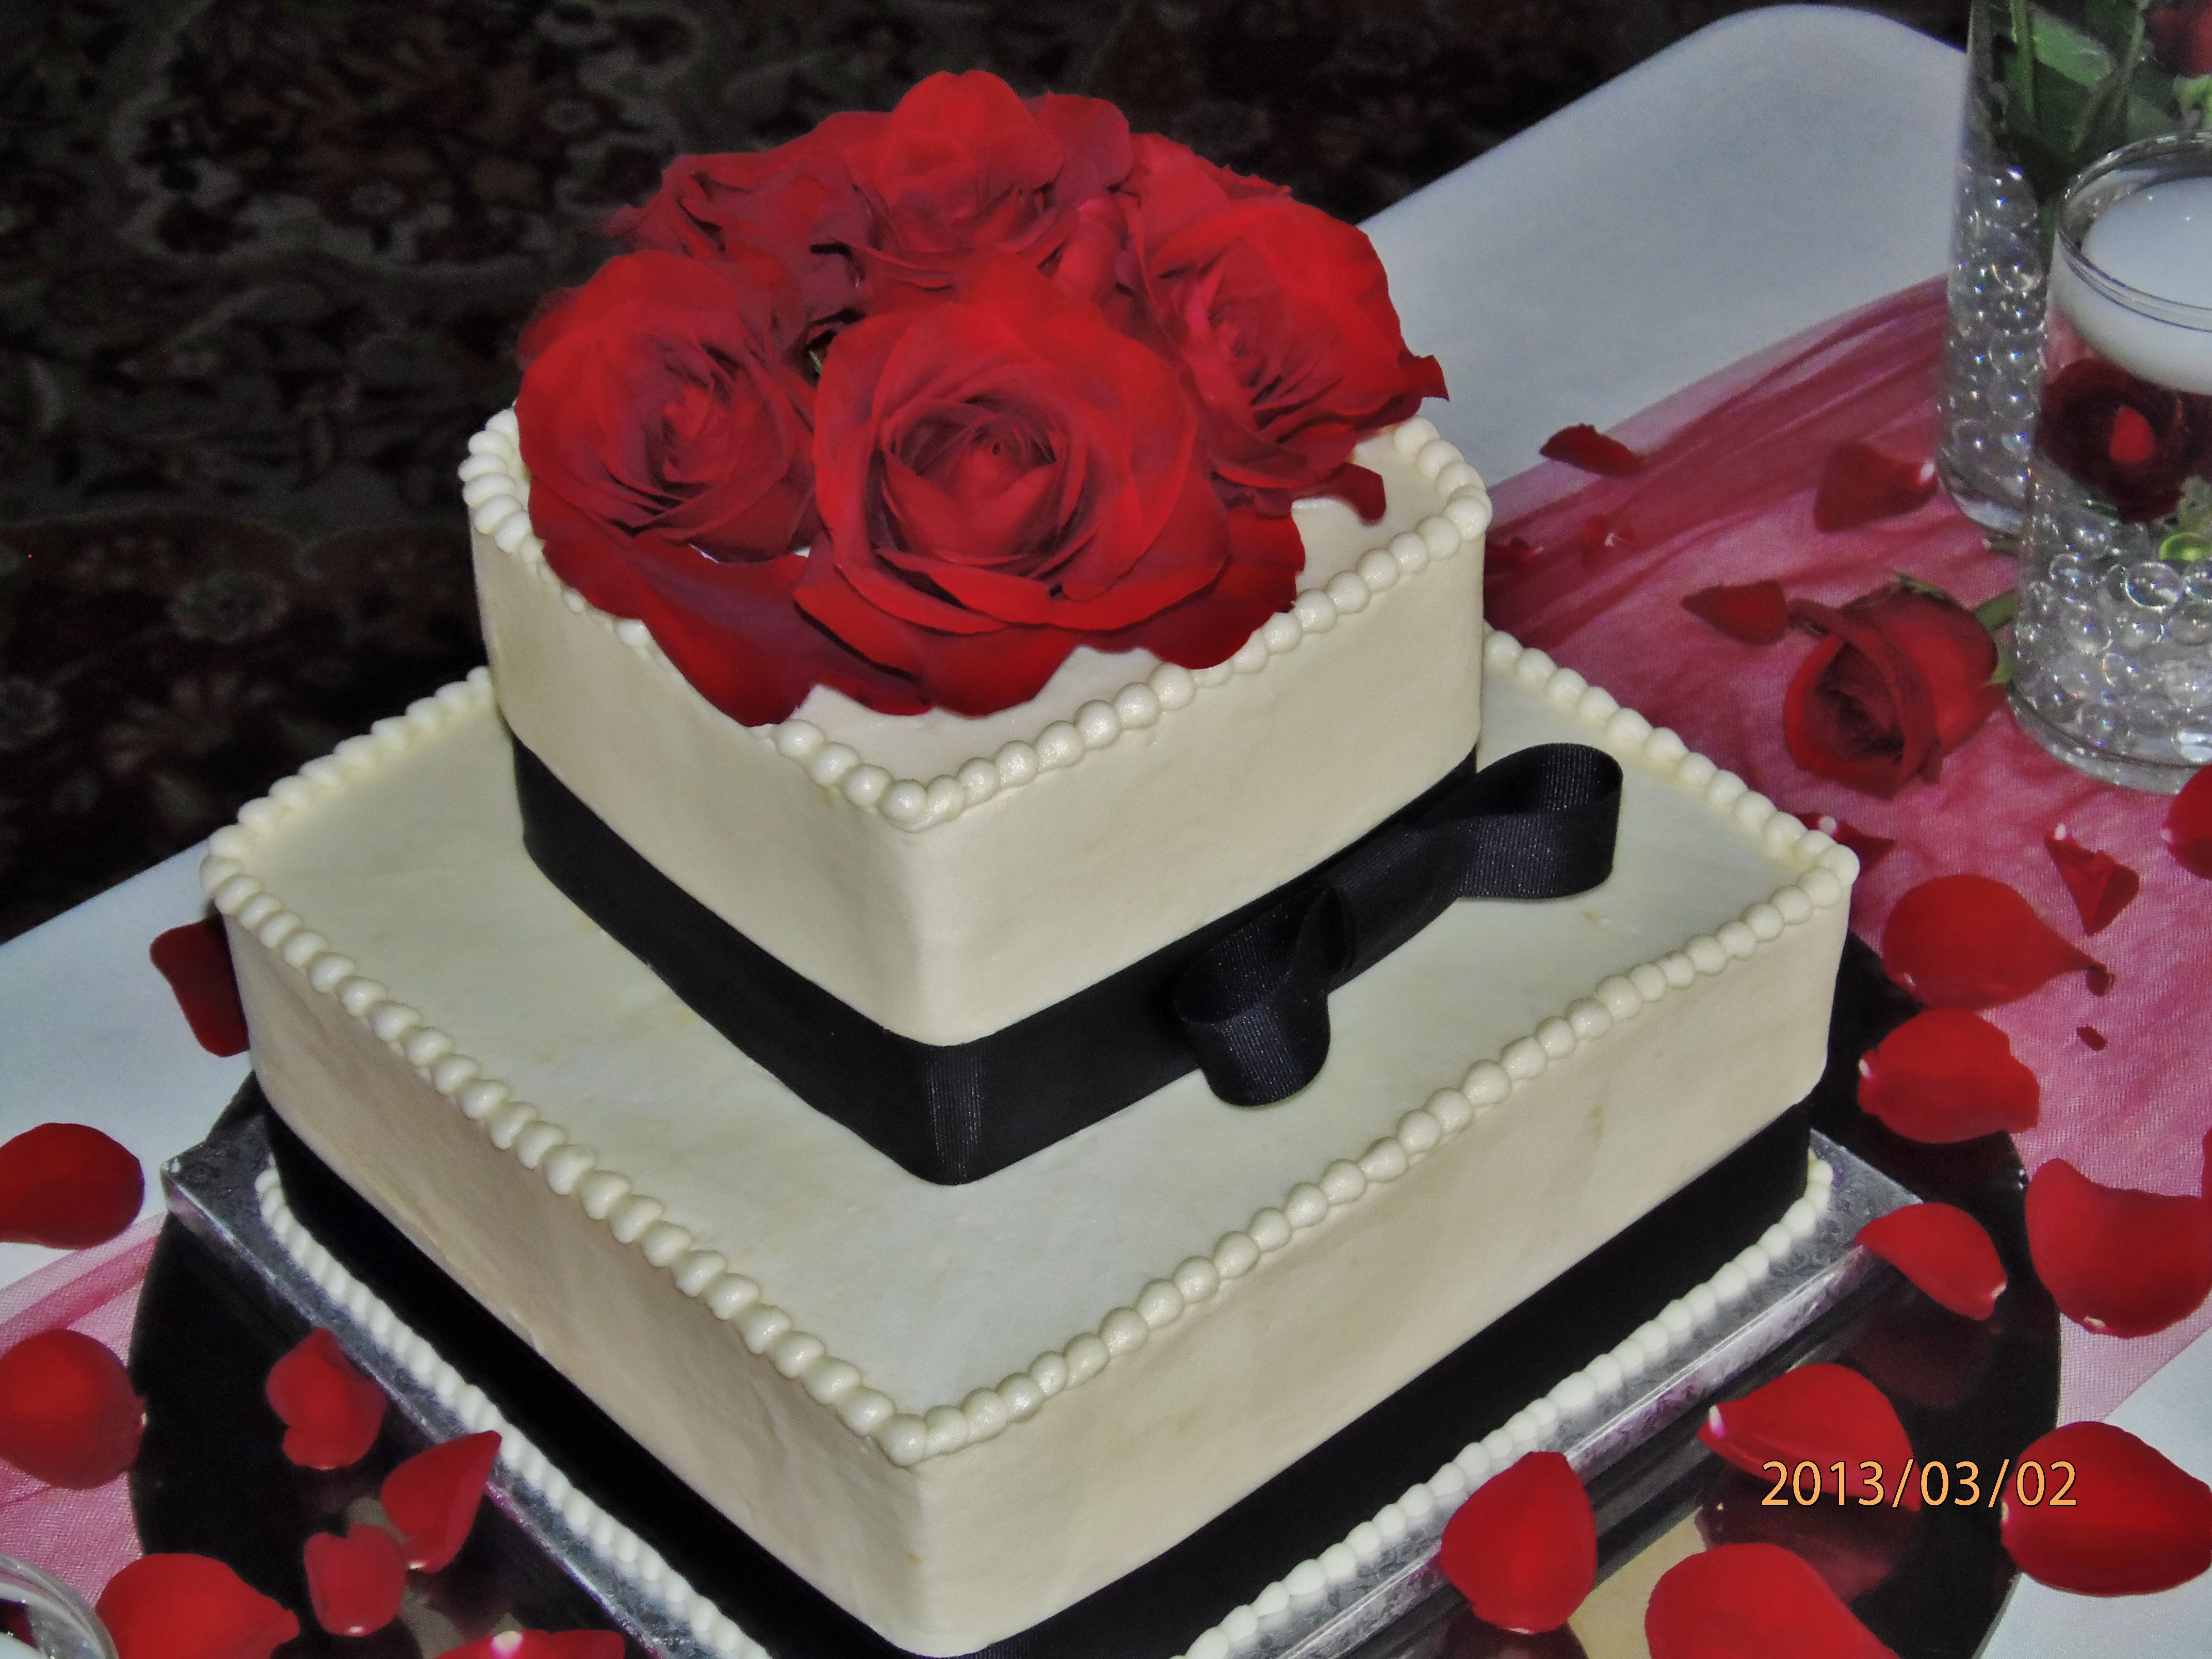 2 Tier Square Red Amp Black Wedding Cake Frosted In Buttercream Black Ribbon W Simple Bow And